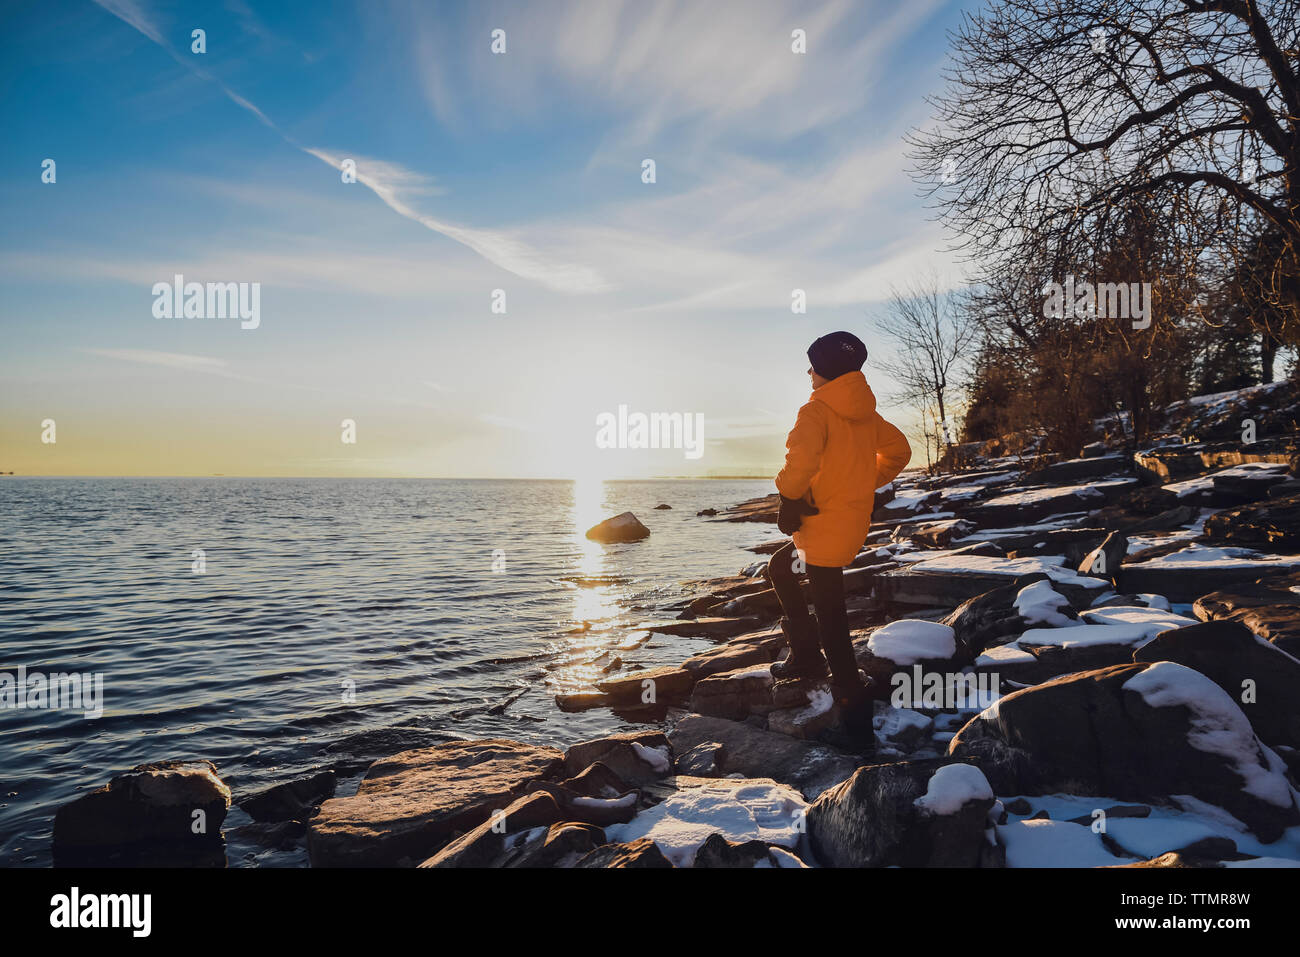 Boy standing alone on shoreline of lake at sunset on a winter evening. Stock Photo